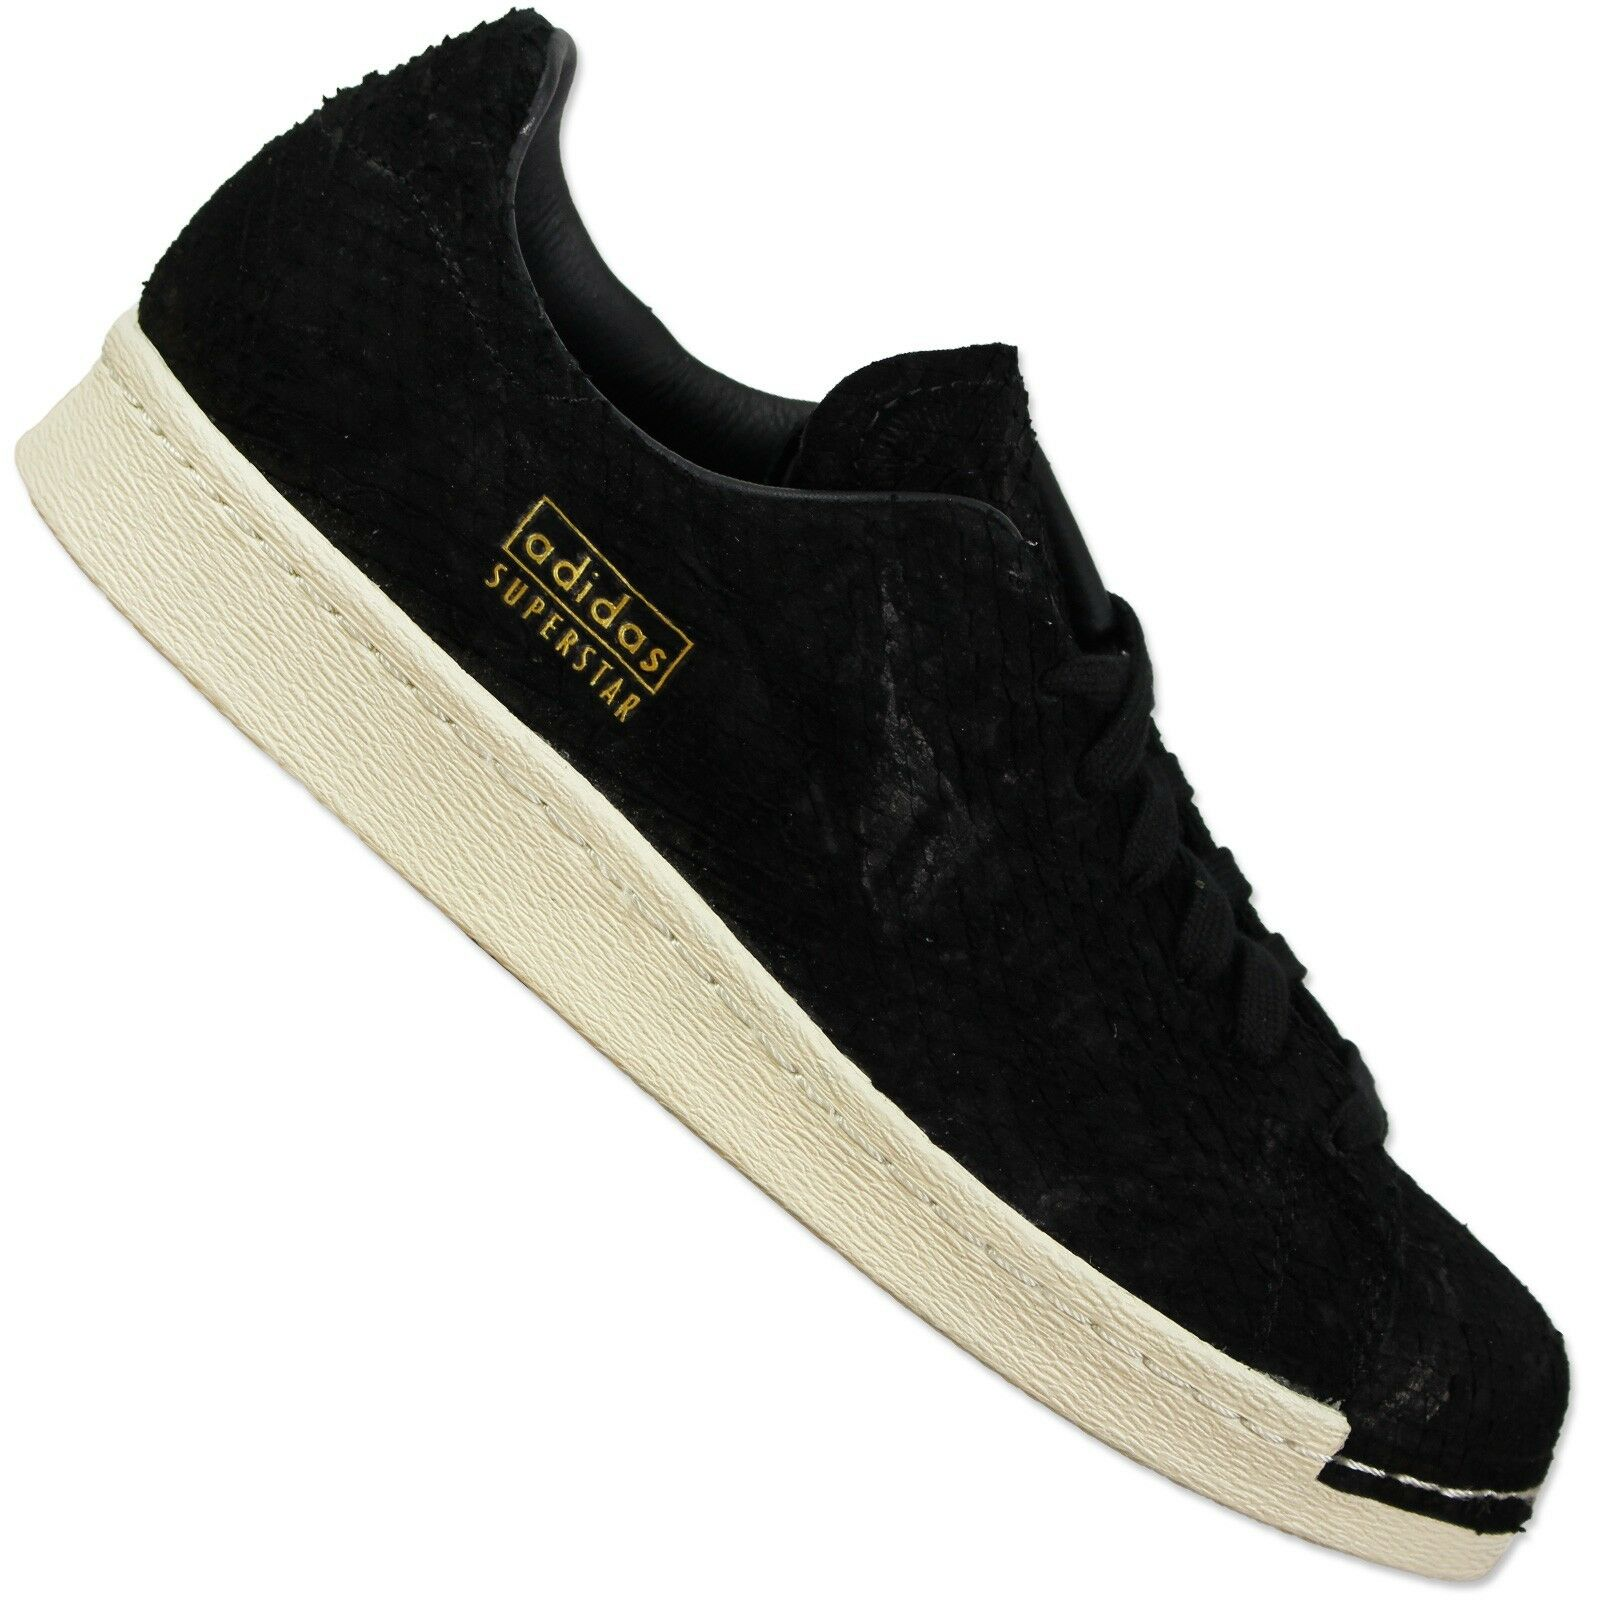 ADIDAS ORIGINALS superstar 80s Clean s82508 cortos señora zapatos negro Black